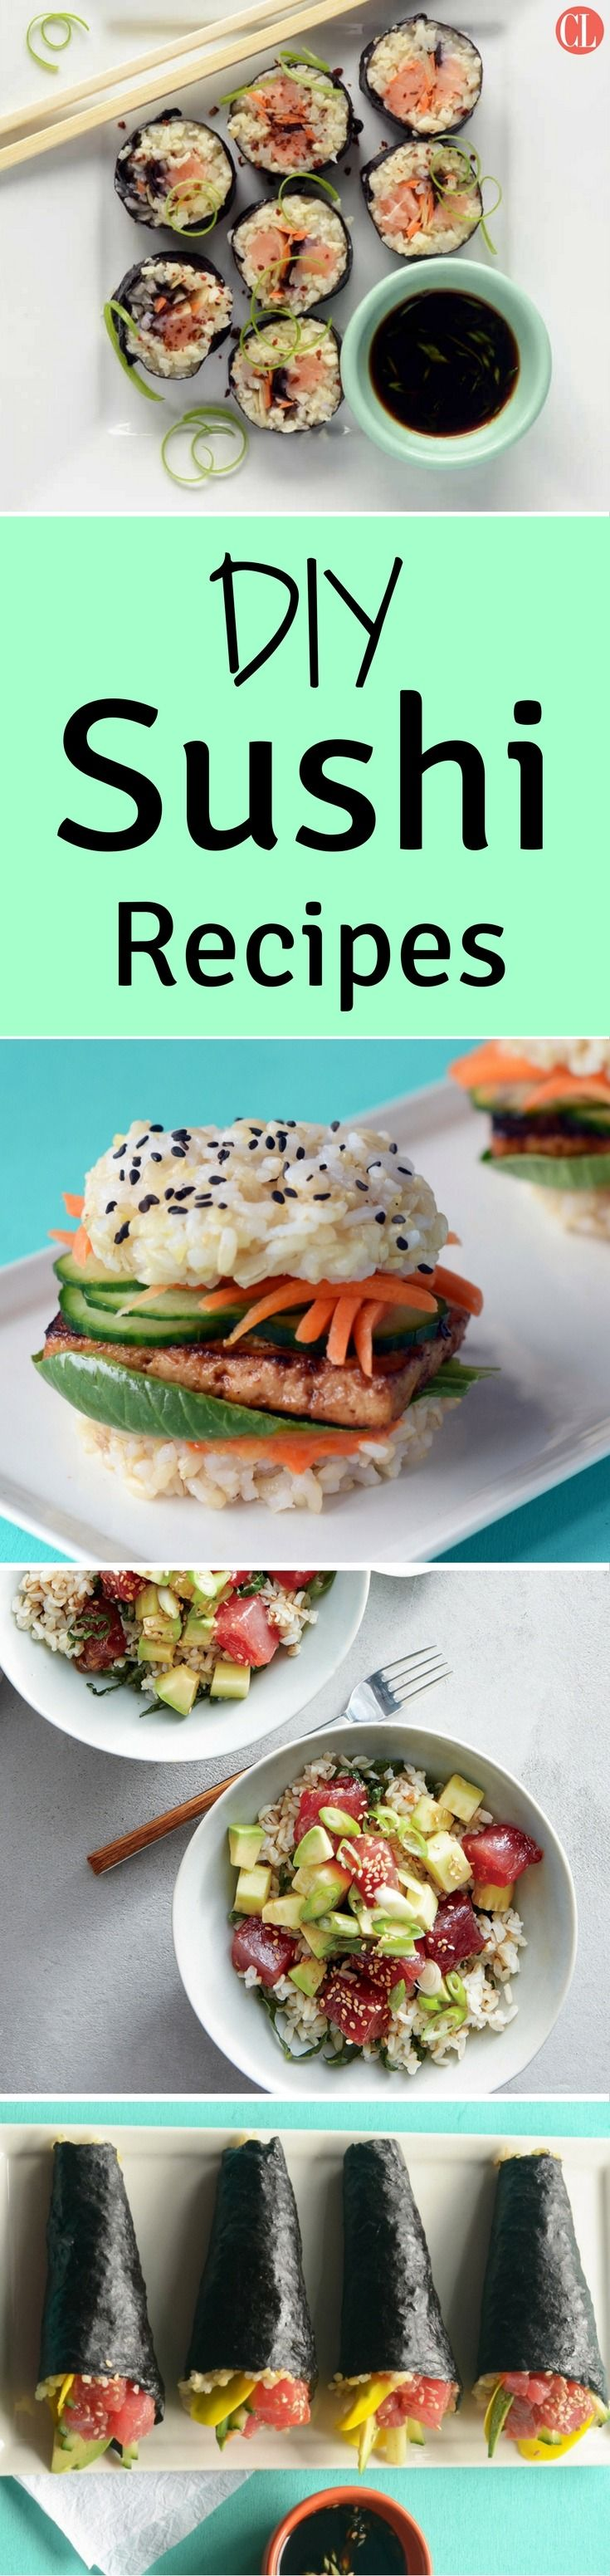 The combinations are endless, and creativity is encouraged. You really only need a few ingredients and a towel (no need for a bamboo mat), and you can get rolling. If sushi rolls aren't for you, fresh poke bowls, sushi sliders, and burritos are light yet satisfying meals that will cure your cravings. Here are easy recipes to get your at homemade sushi journey started. | Cooking Light